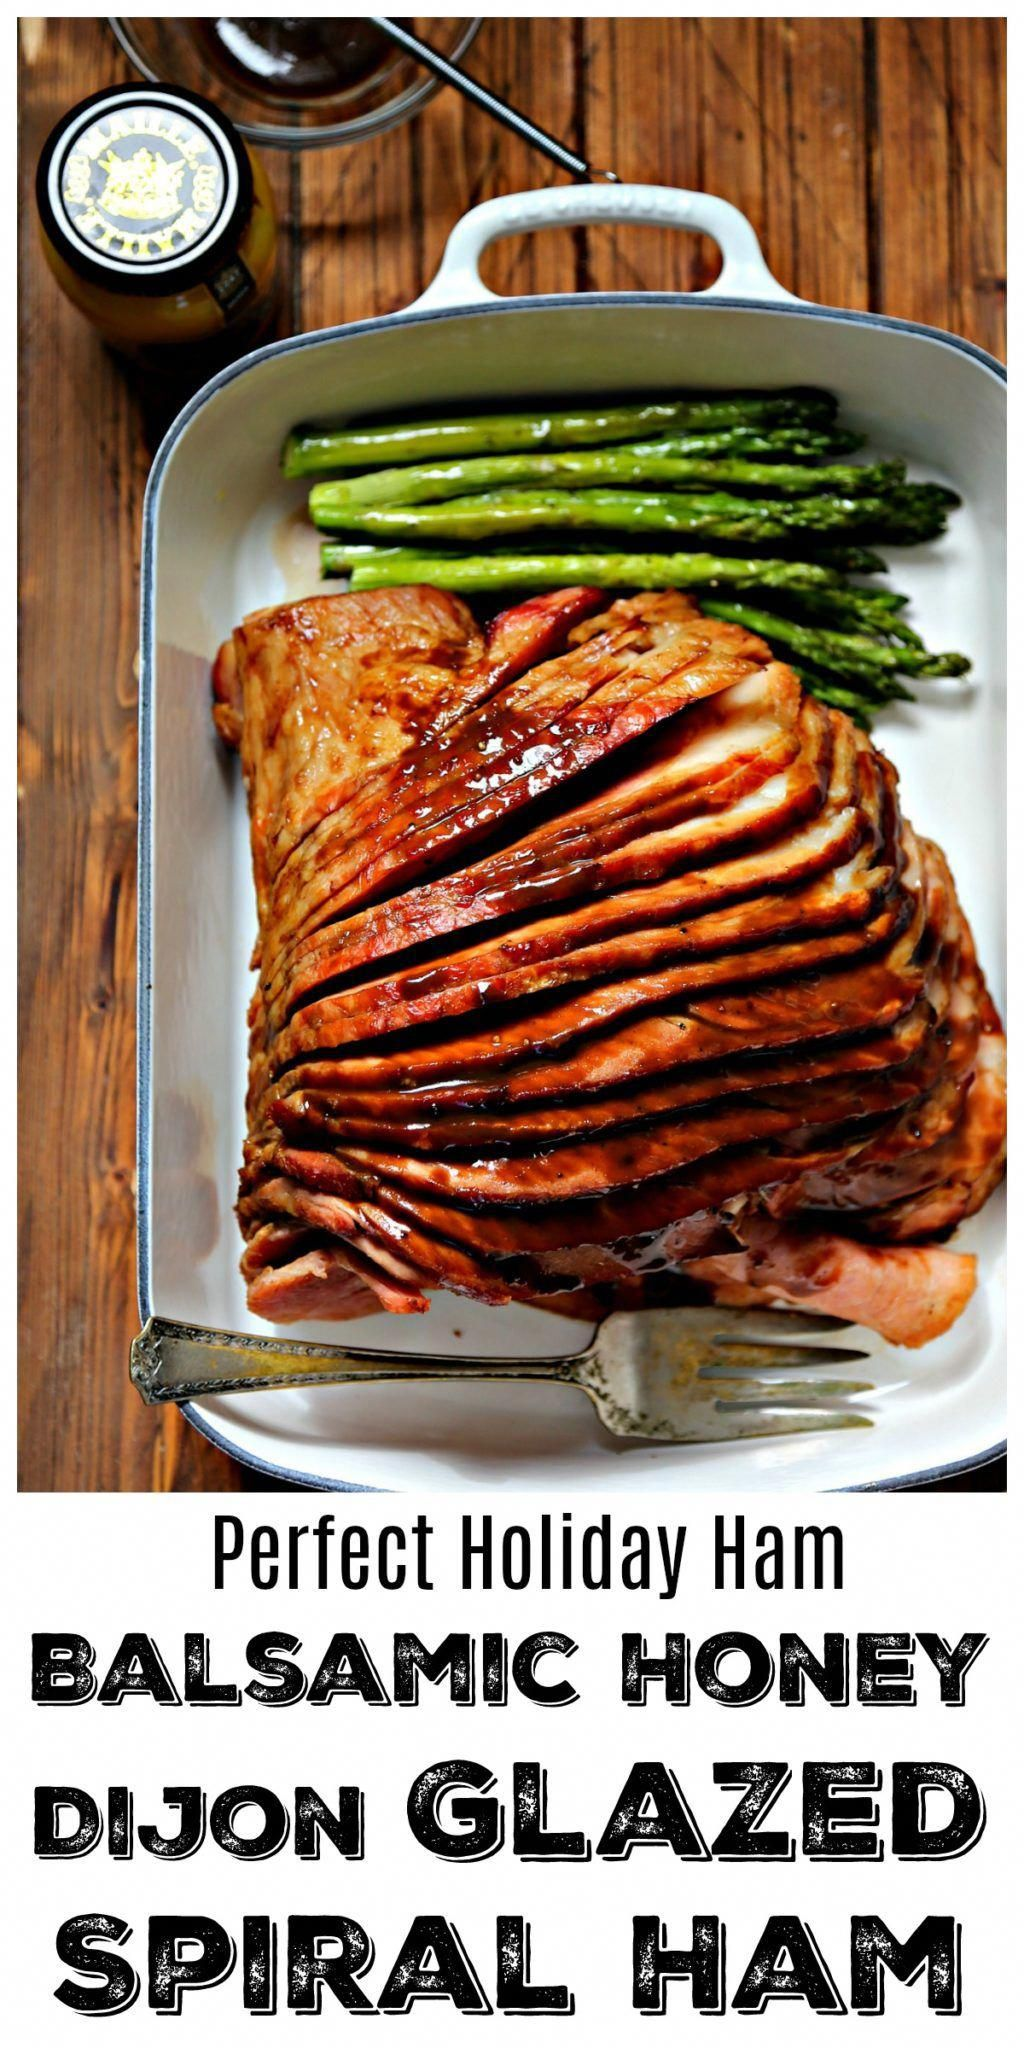 This Balsamic Honey Dijon Glazed Spiral Ham is the holiday ham recipe you're looking for. #OhMaille, the balsamic honey Dijon glaze is the perfect combination of sweet and savory flavors. So easy to prepare it's almost effortless. #Ad Made with Maille® Honey Dijon Mustard #recipes #ham #pork #easter #easyrecipe #holiday #holidayrecipes #MyMaille #IDidItMailleWay #Walmart #balsamicrecipes